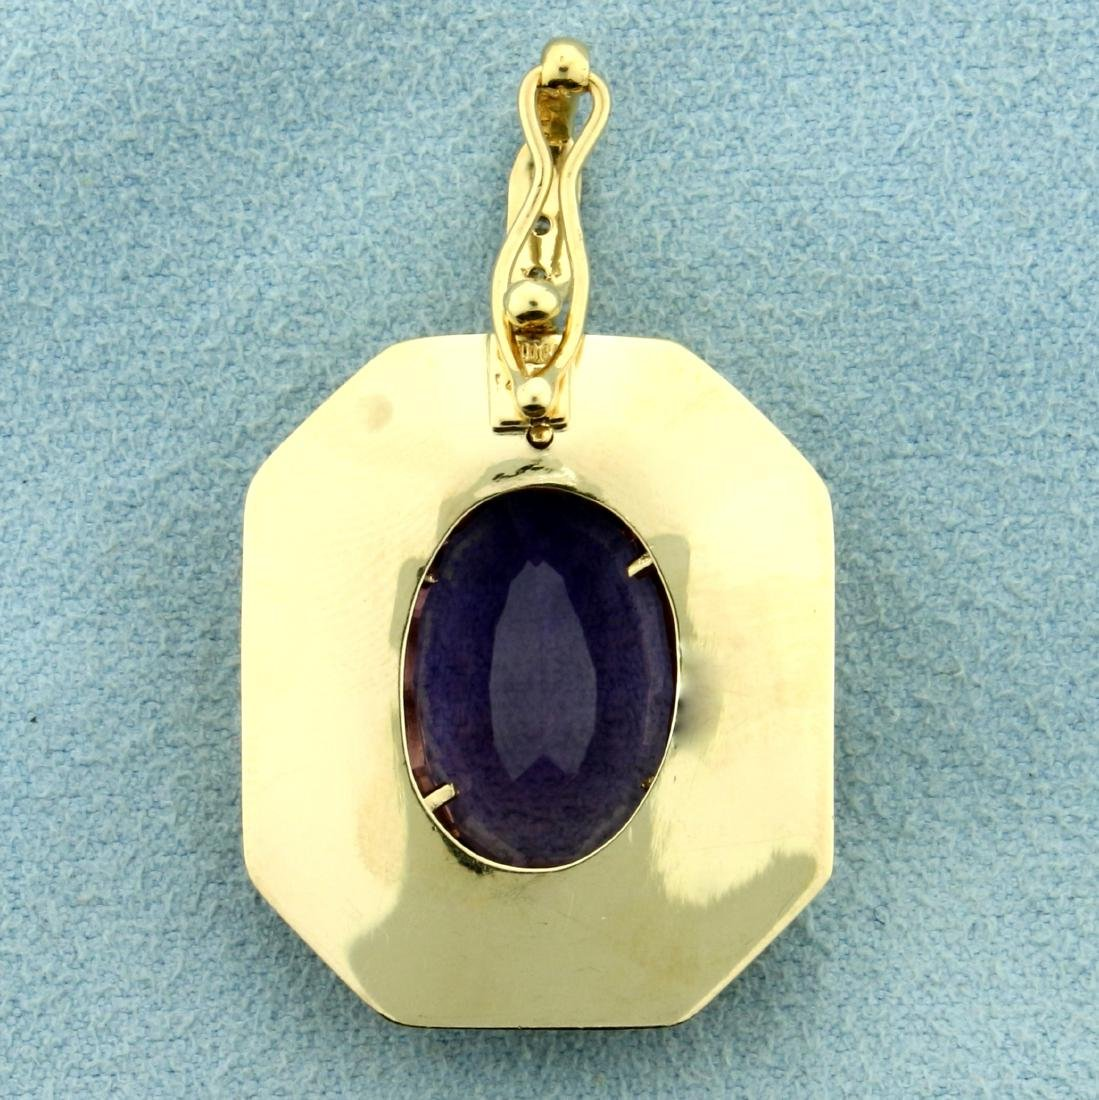 10ct Amethyst Pendant with Diamonds in 14K Yellow Gold - 2